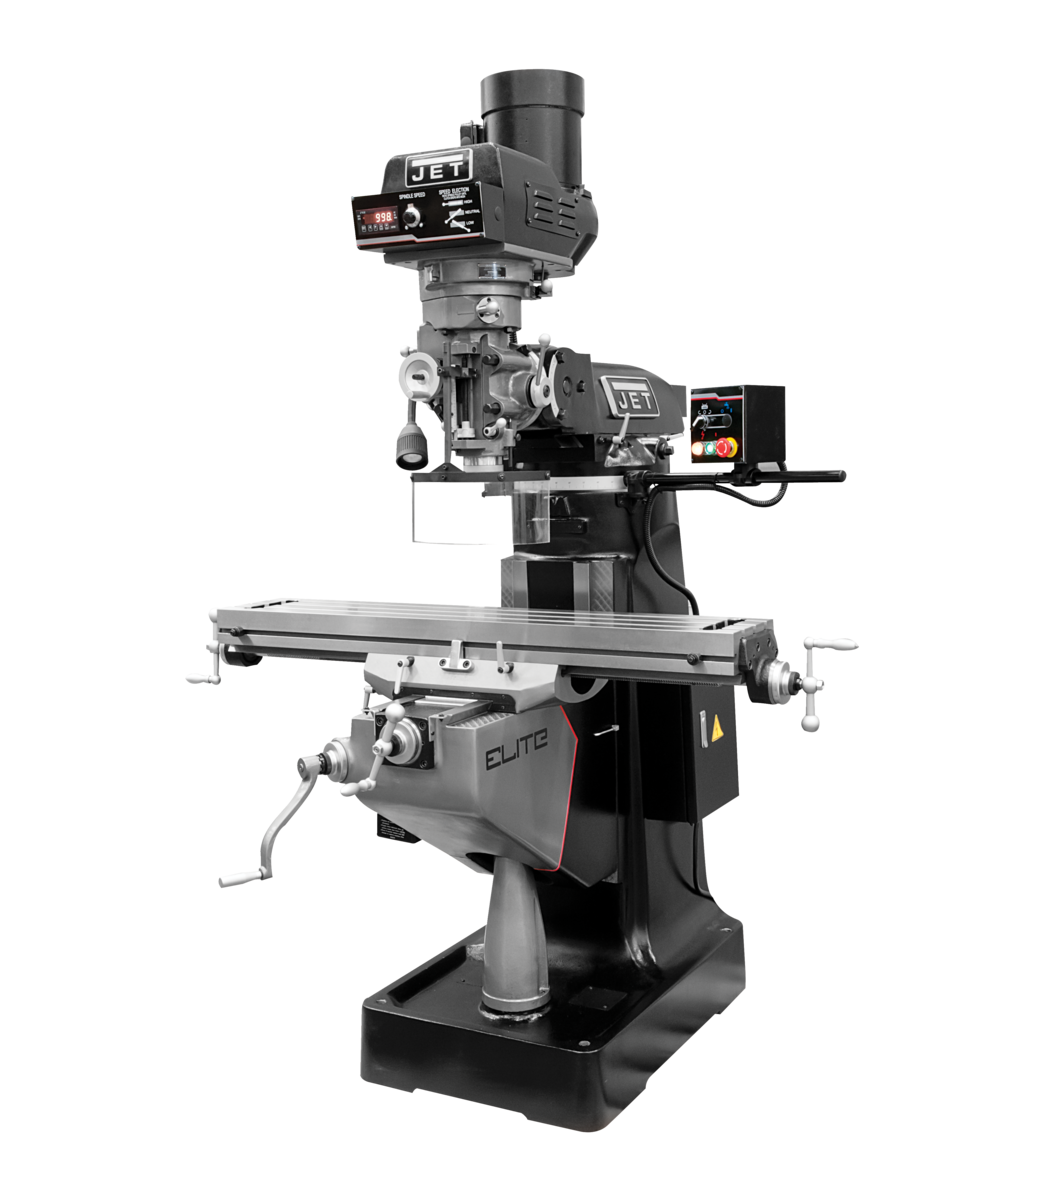 EVS-949 Mill with 3-Axis ACU-RITE 203 (Quill) DRO and X-Axis JET Powerfeed and USA Made Air Draw Bar